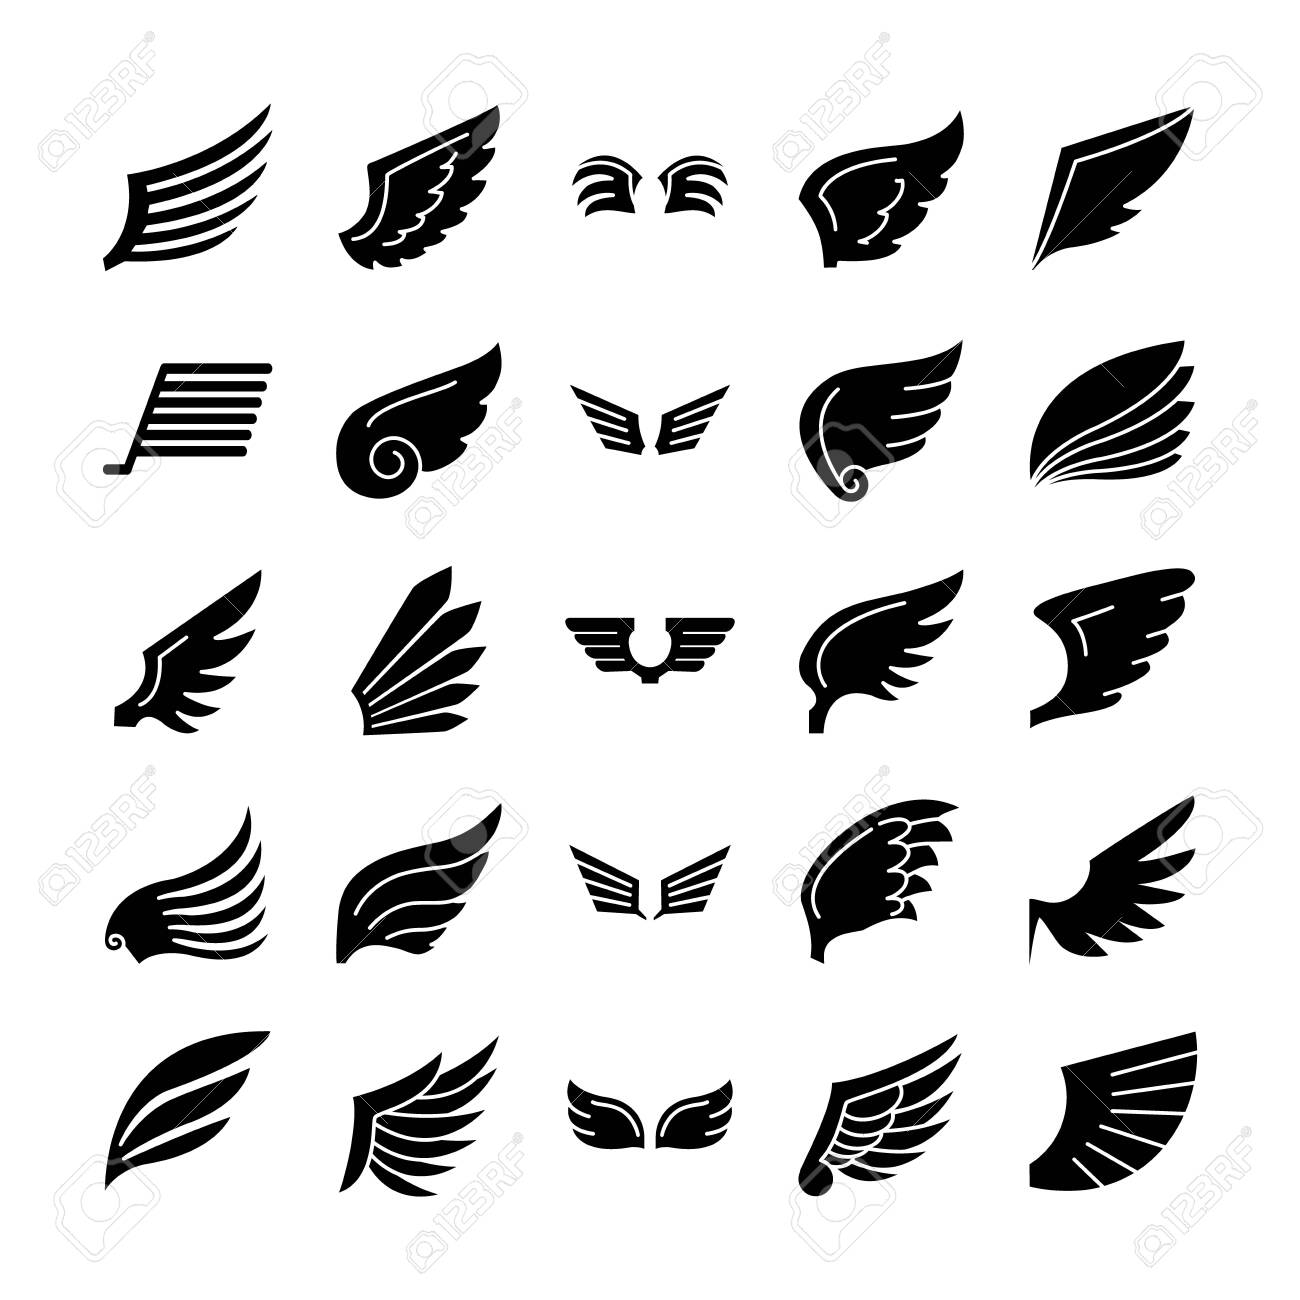 icon set of wings and falcon wings over white background, silhouette style, vector illustration - 153364028